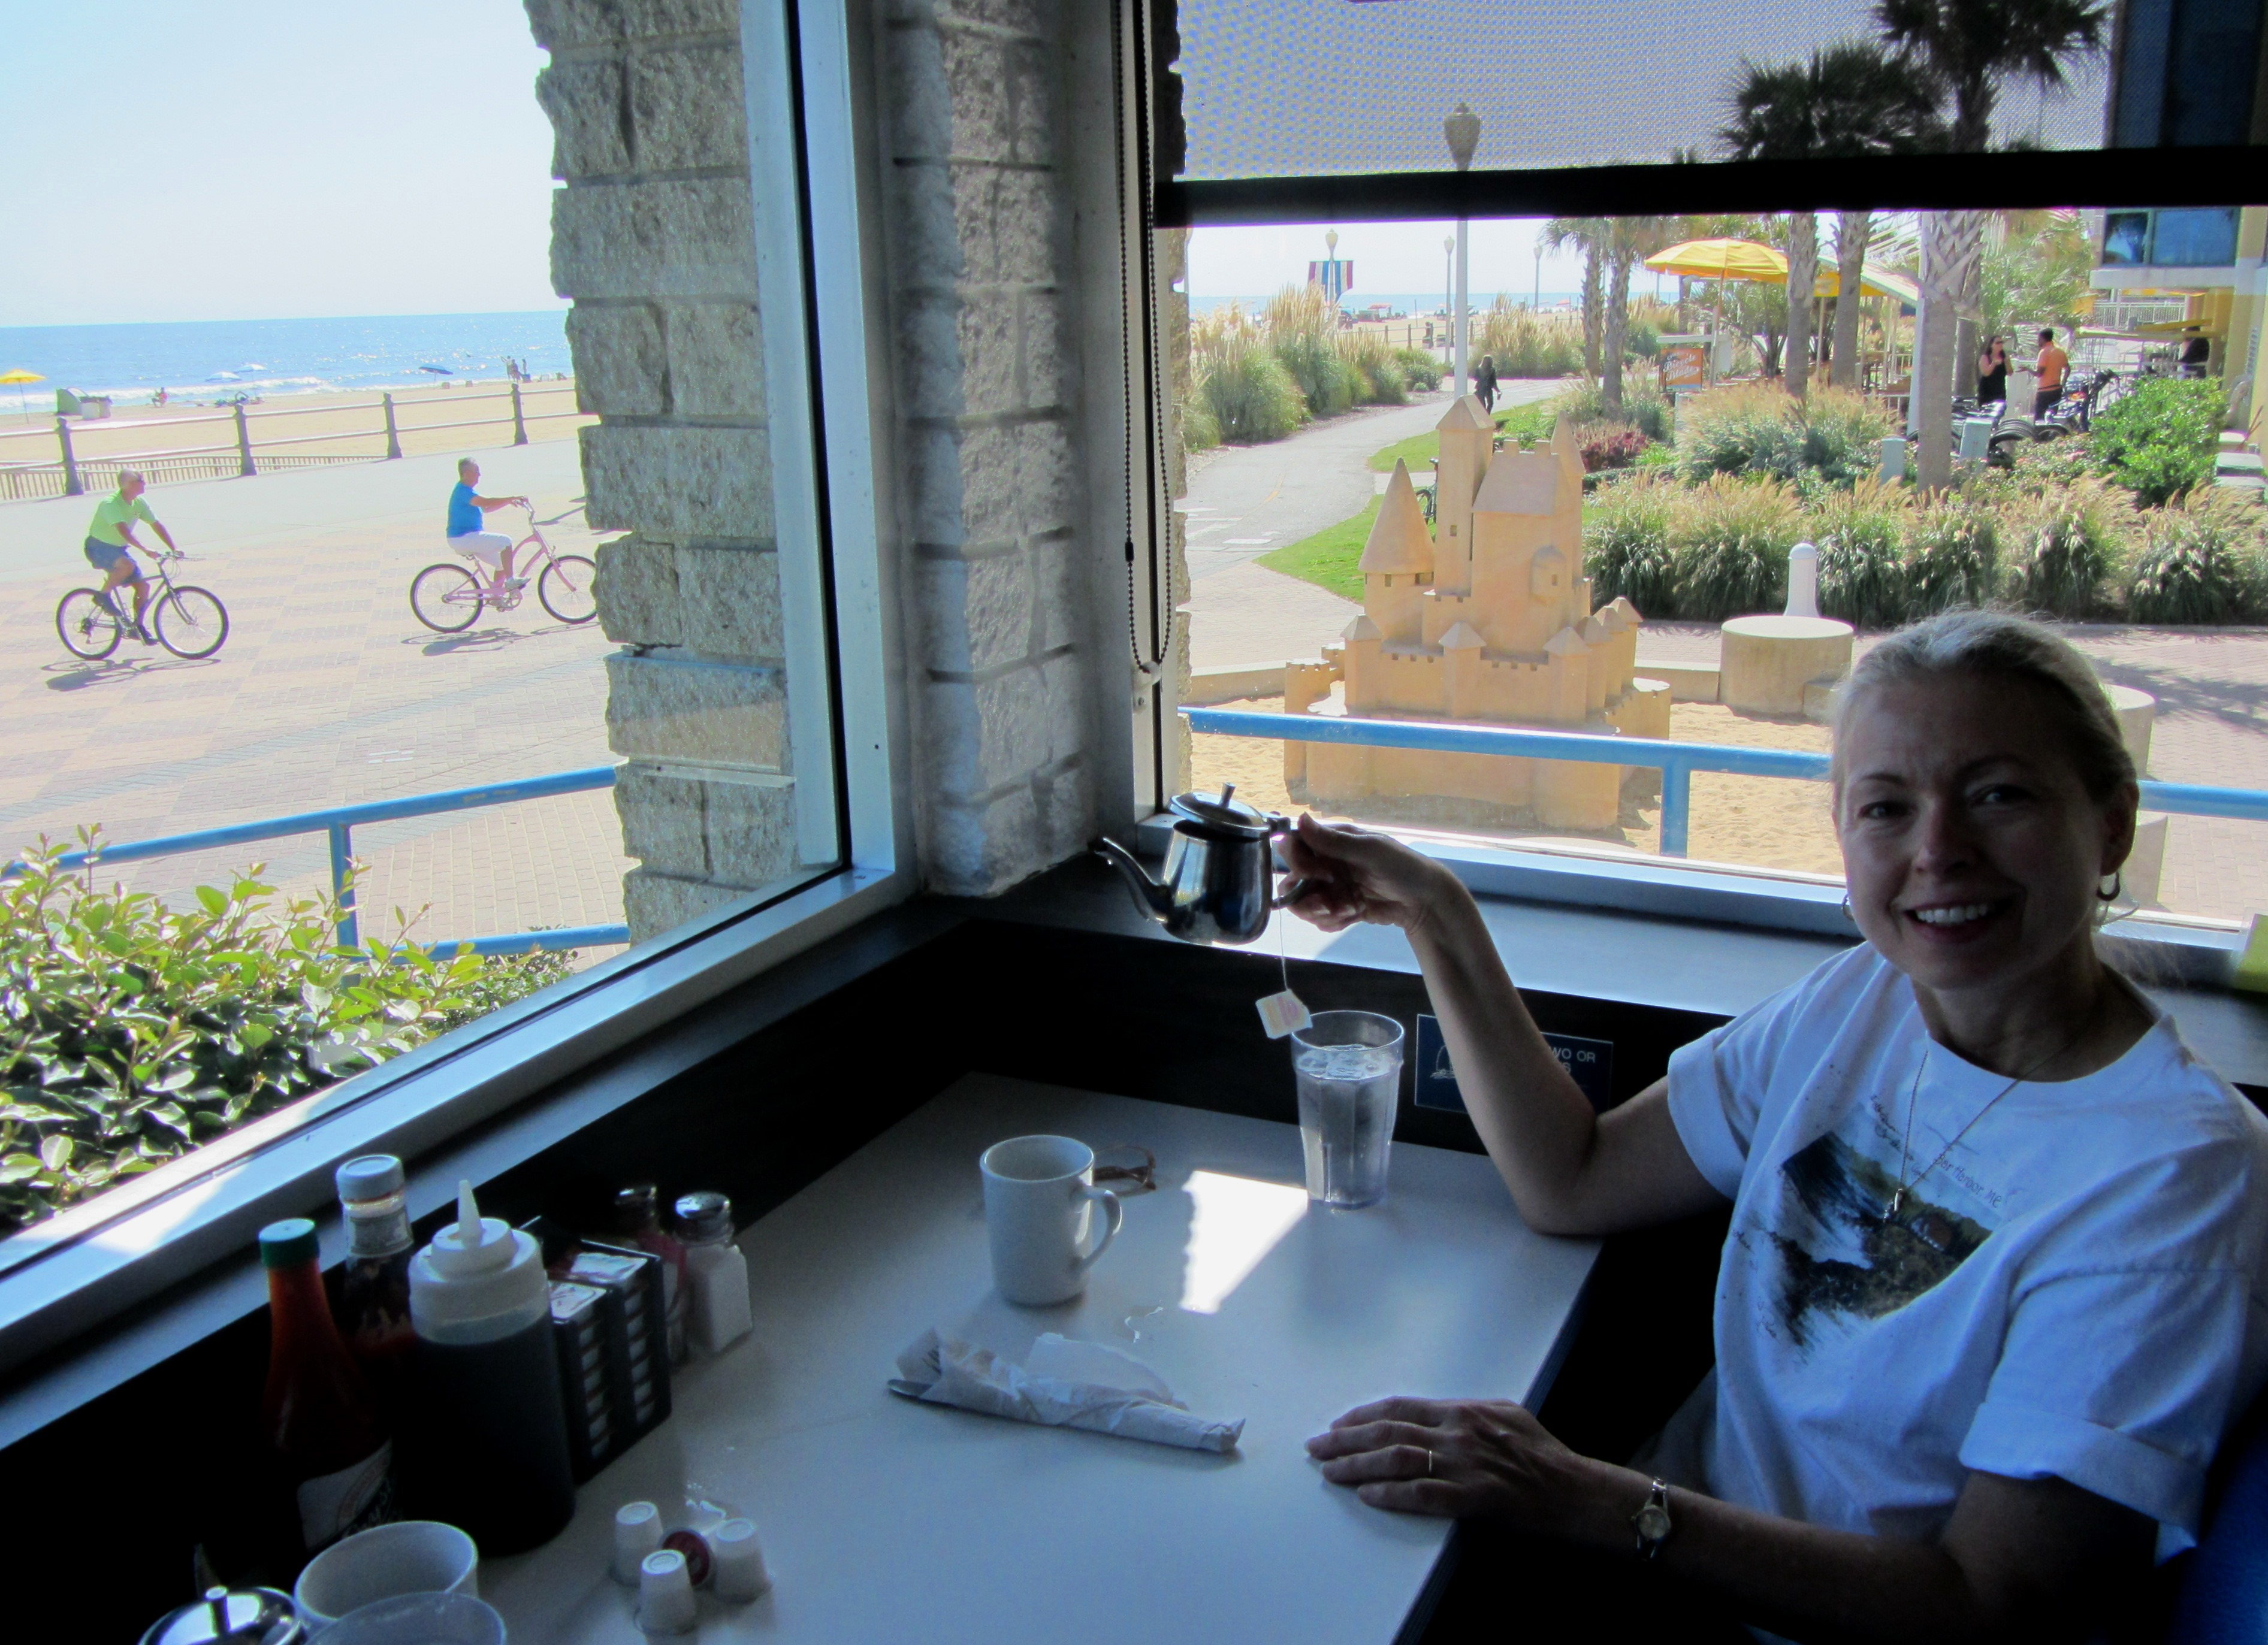 With this view, you can't go wrong! Virginia Beach, September 2013